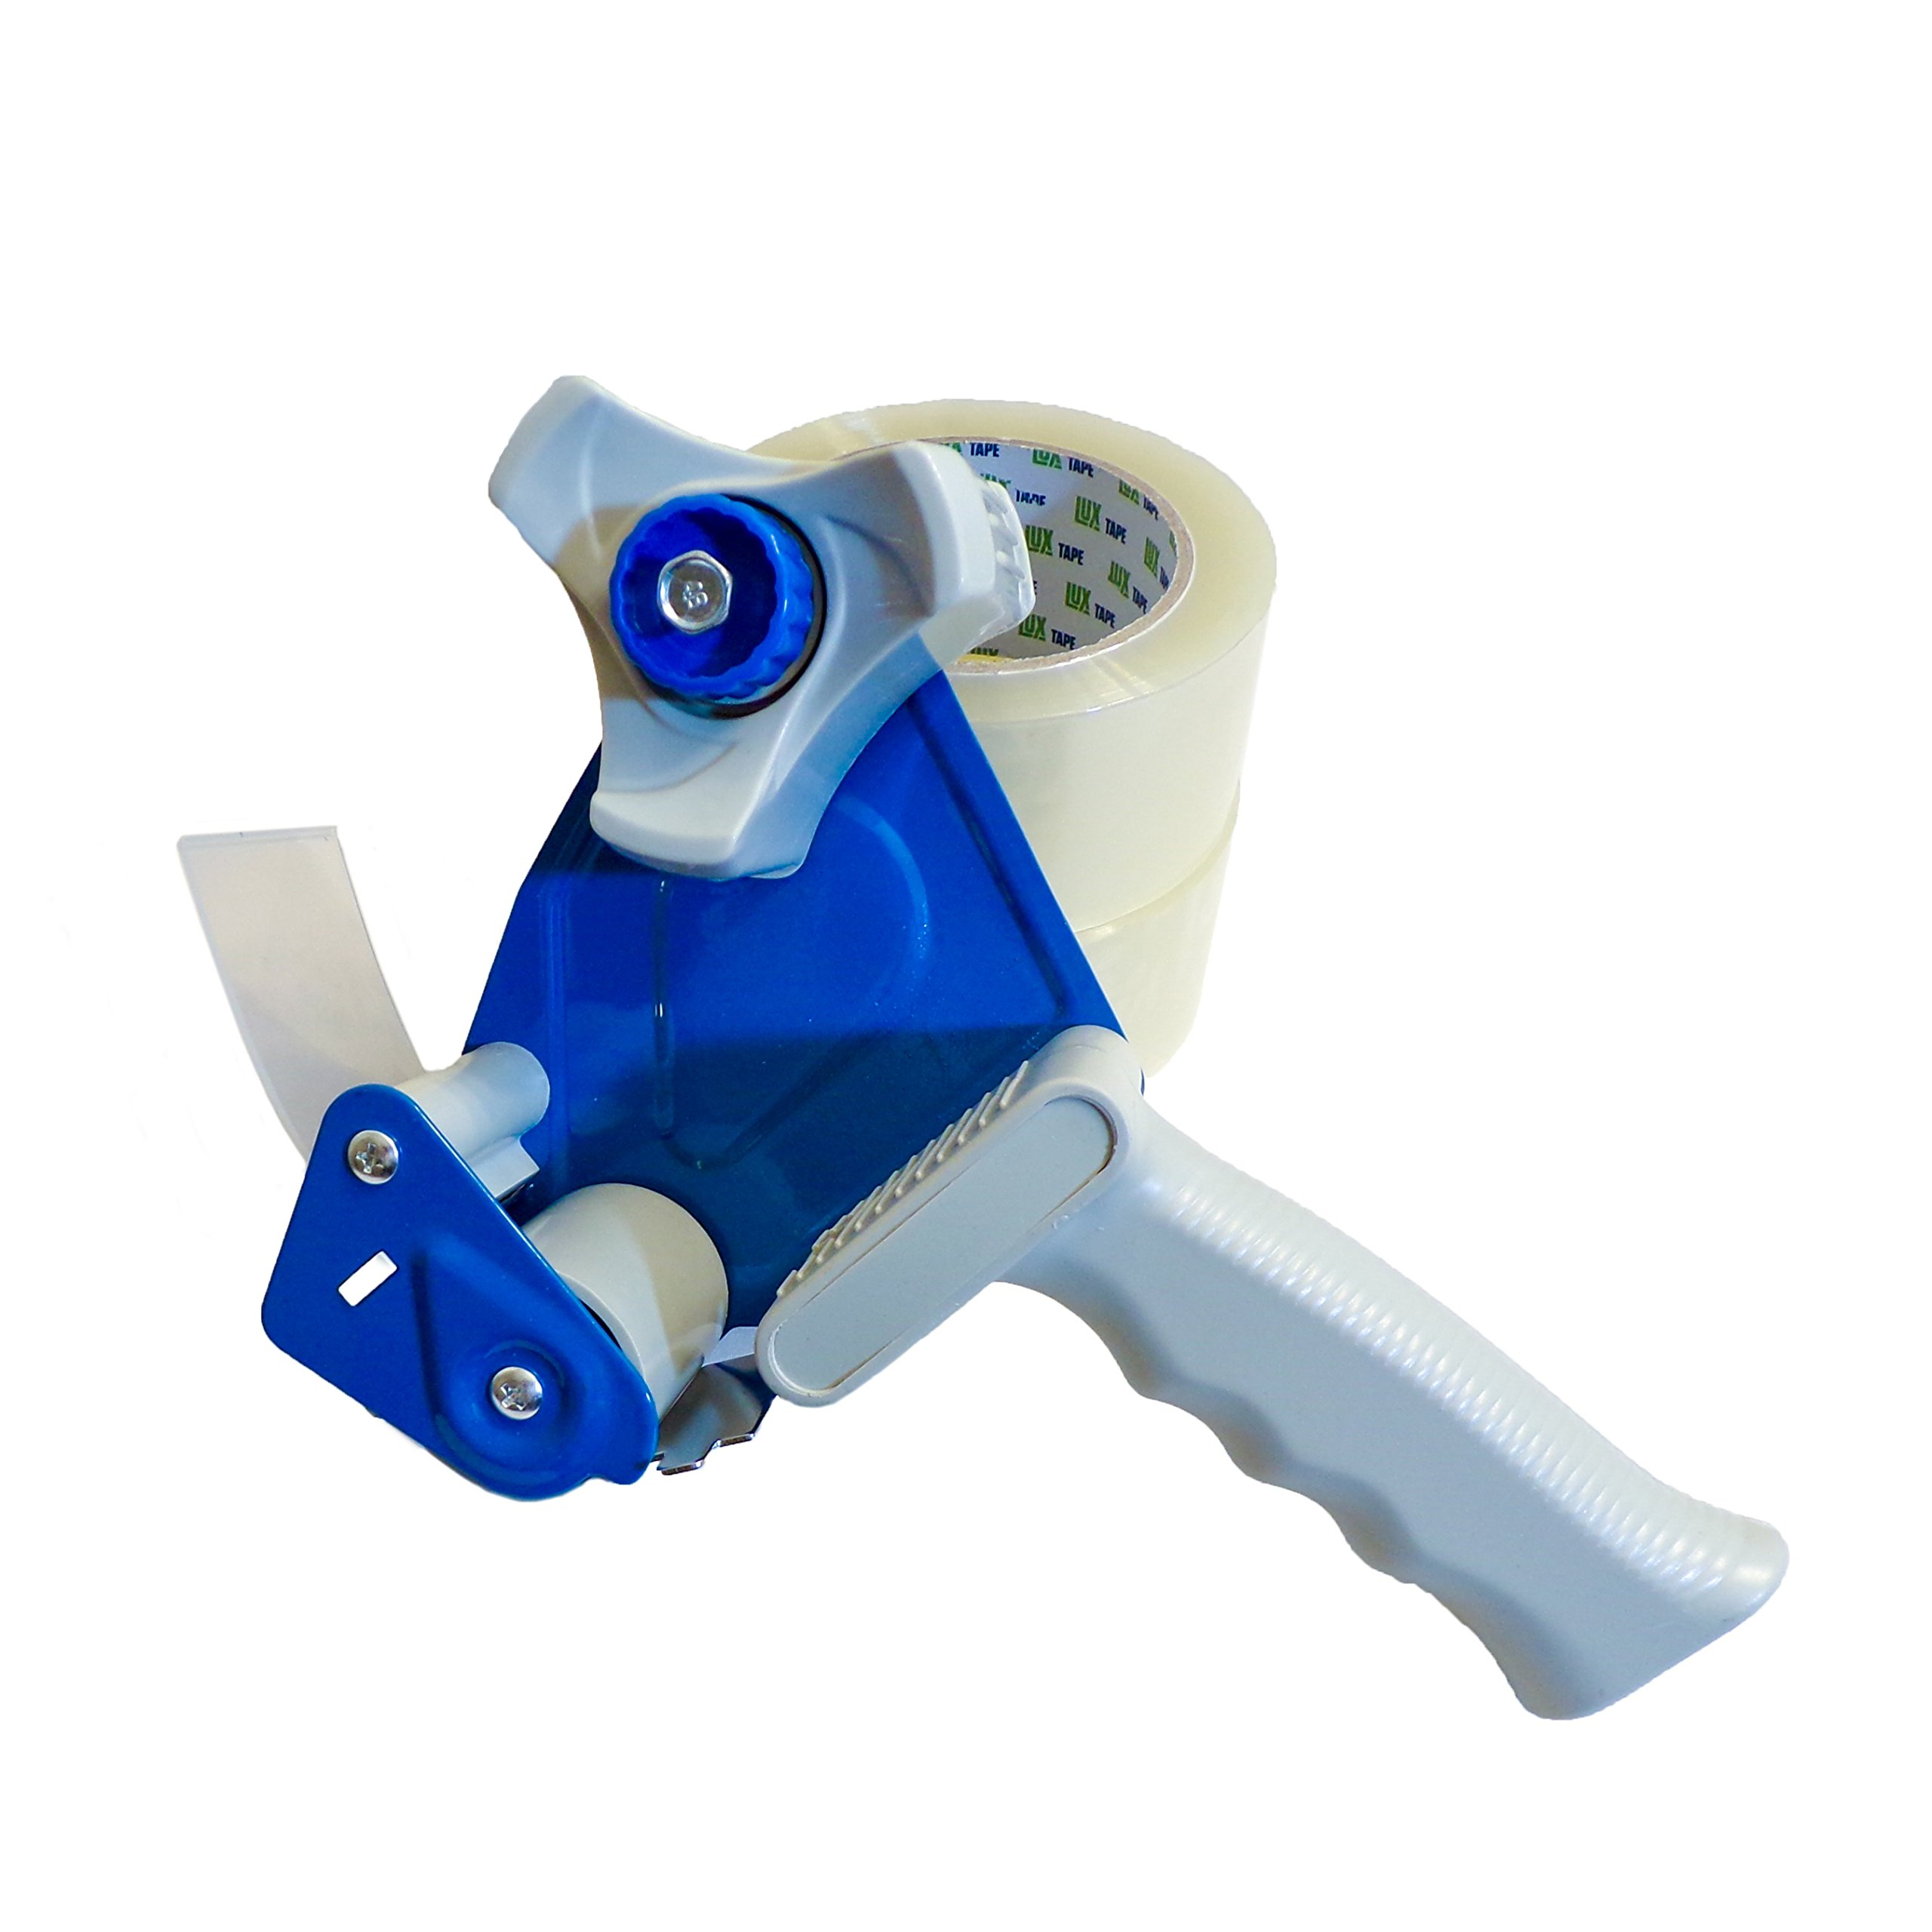 Heavy Duty Packing Box Roll tape dispenser Gun Blue for 2'' Roll Tape, Strong Quality